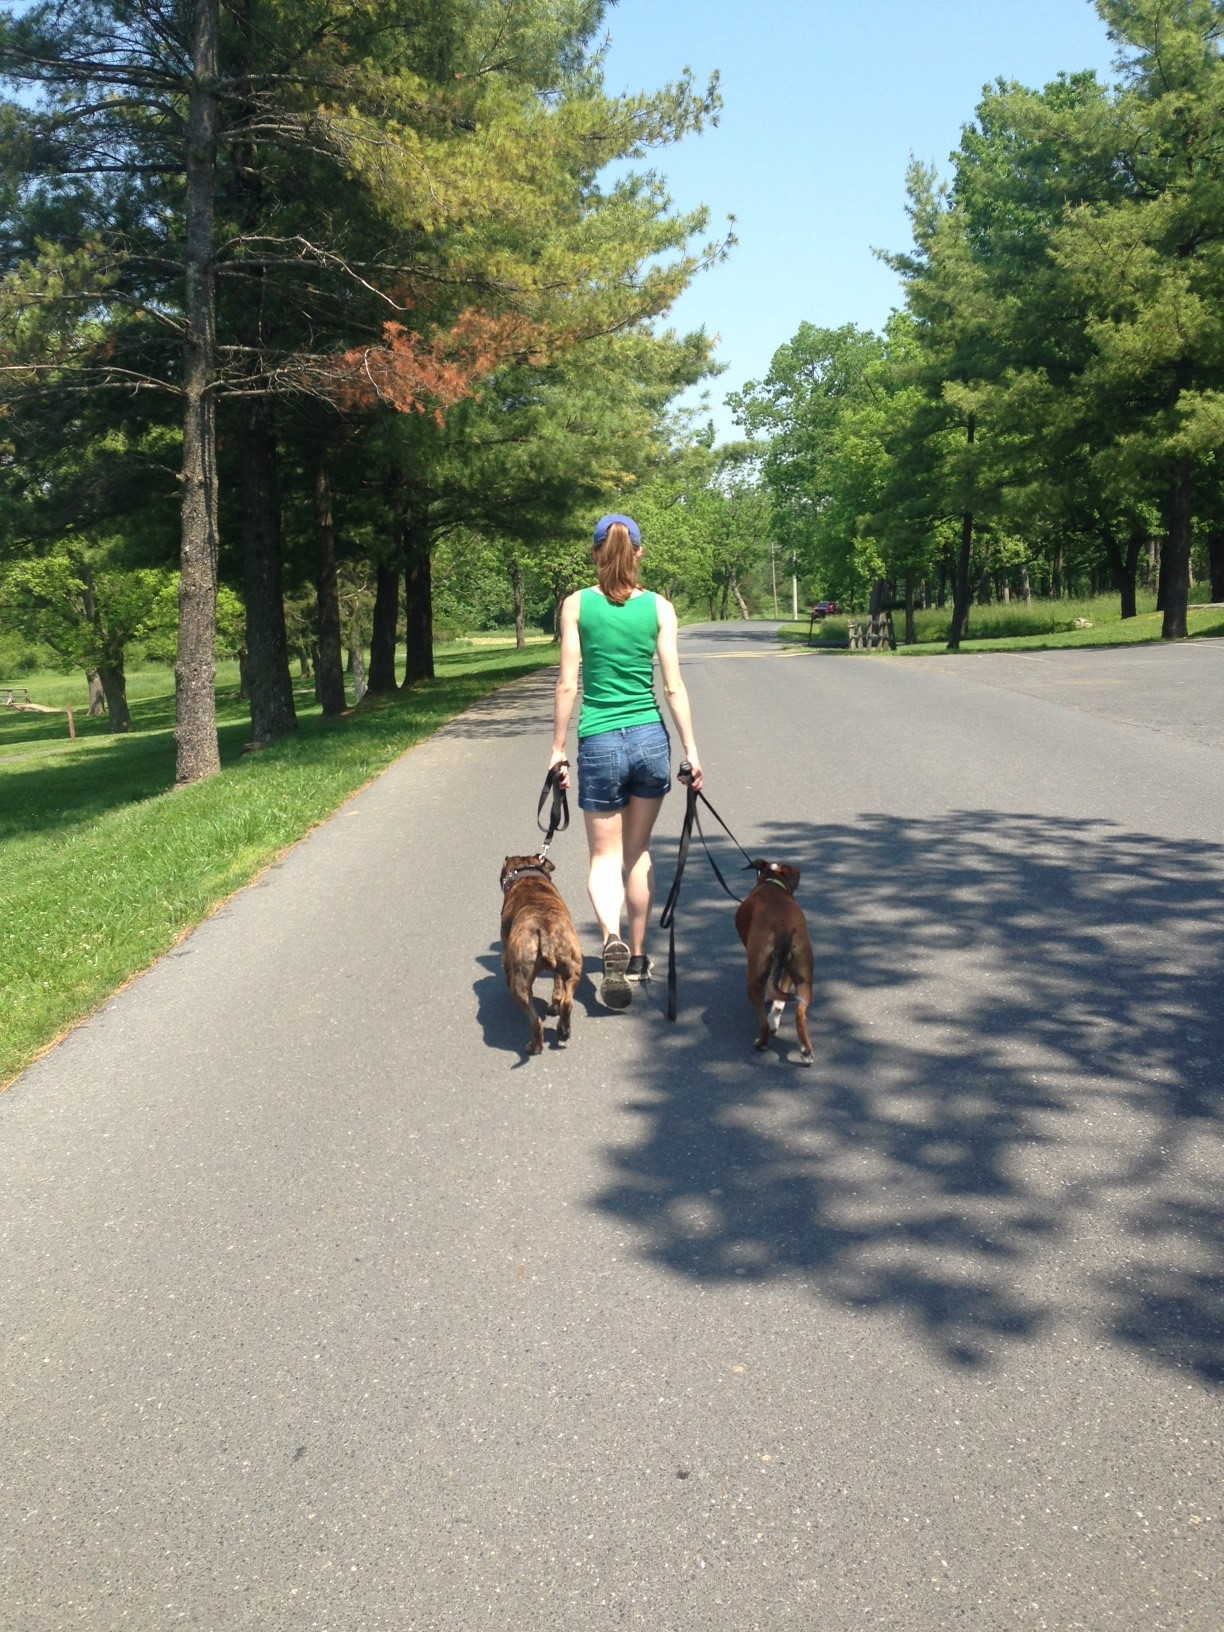 Jug taking a happy walk with his owner and another dog after his training at The Balanced Dog is complete.